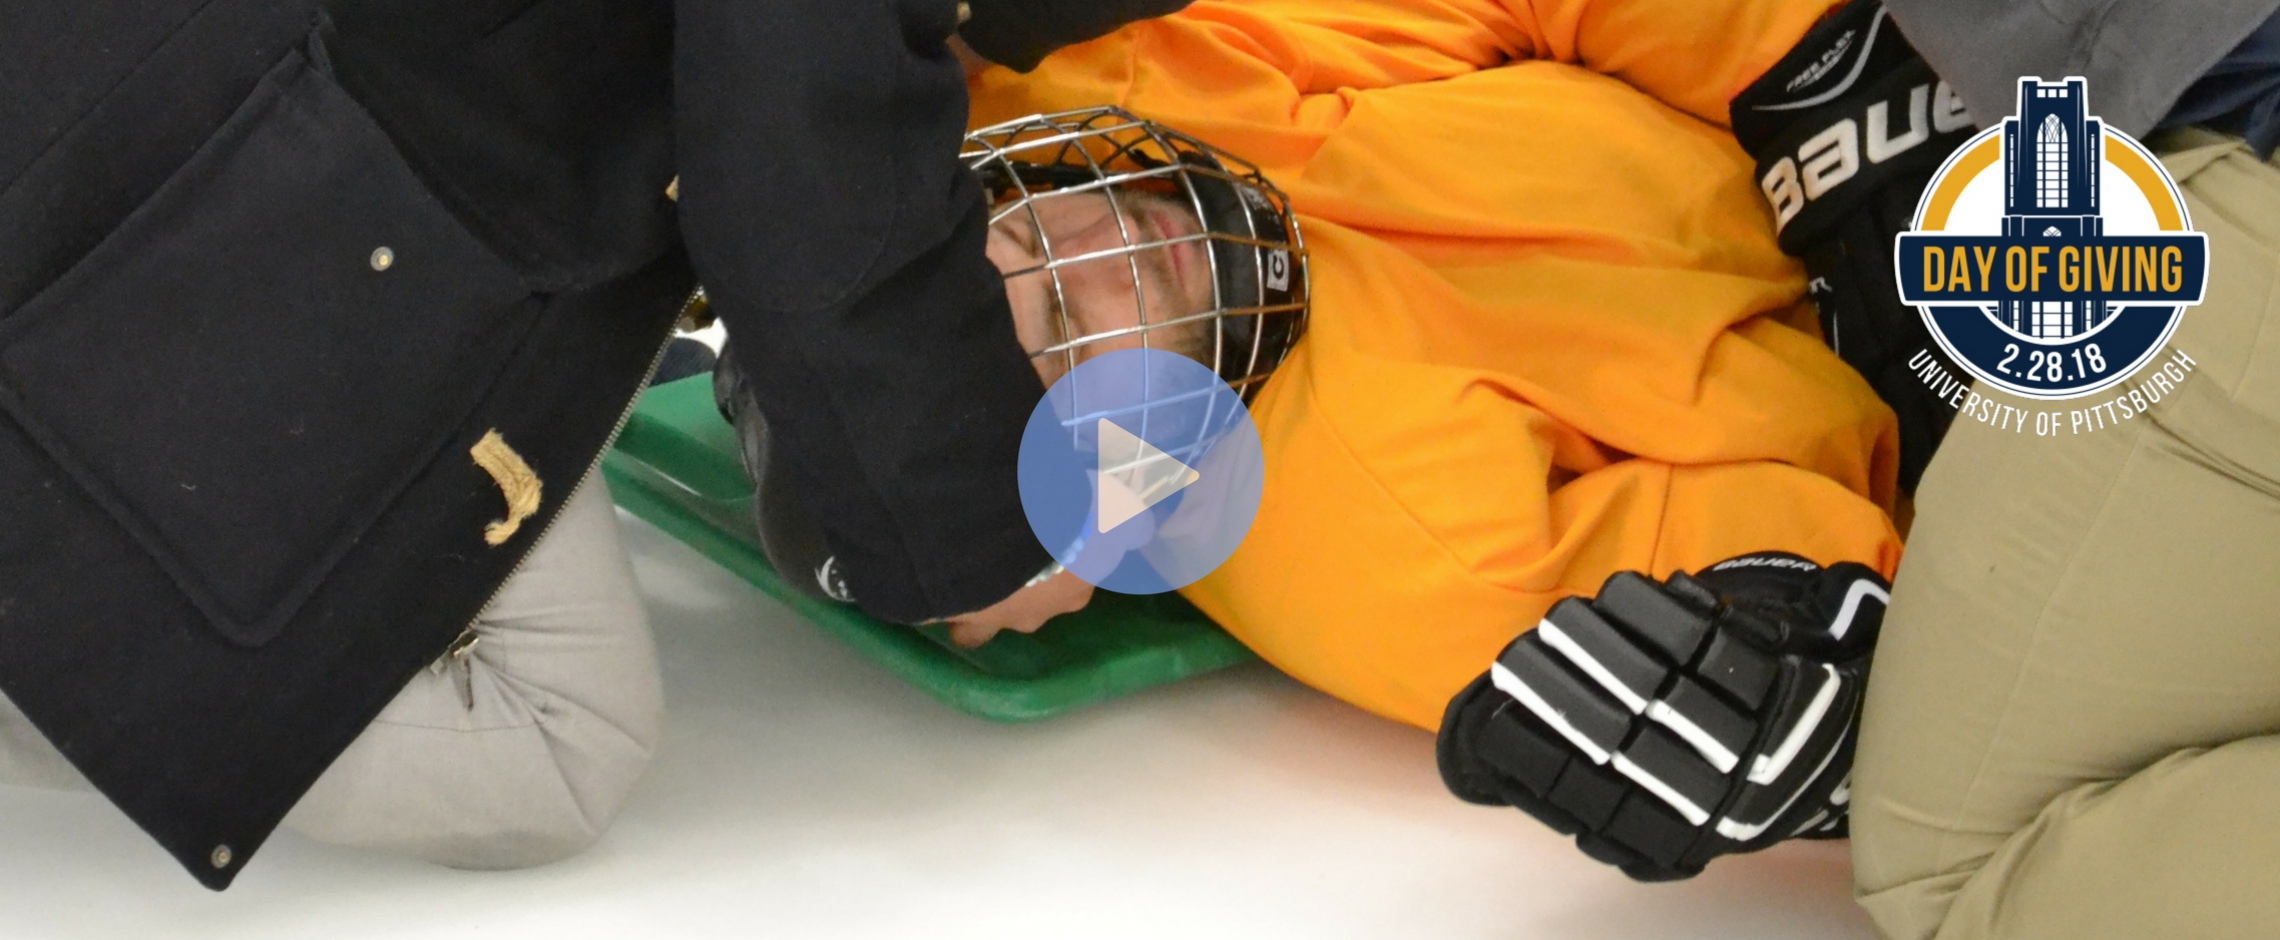 Spine Boarding on Ice